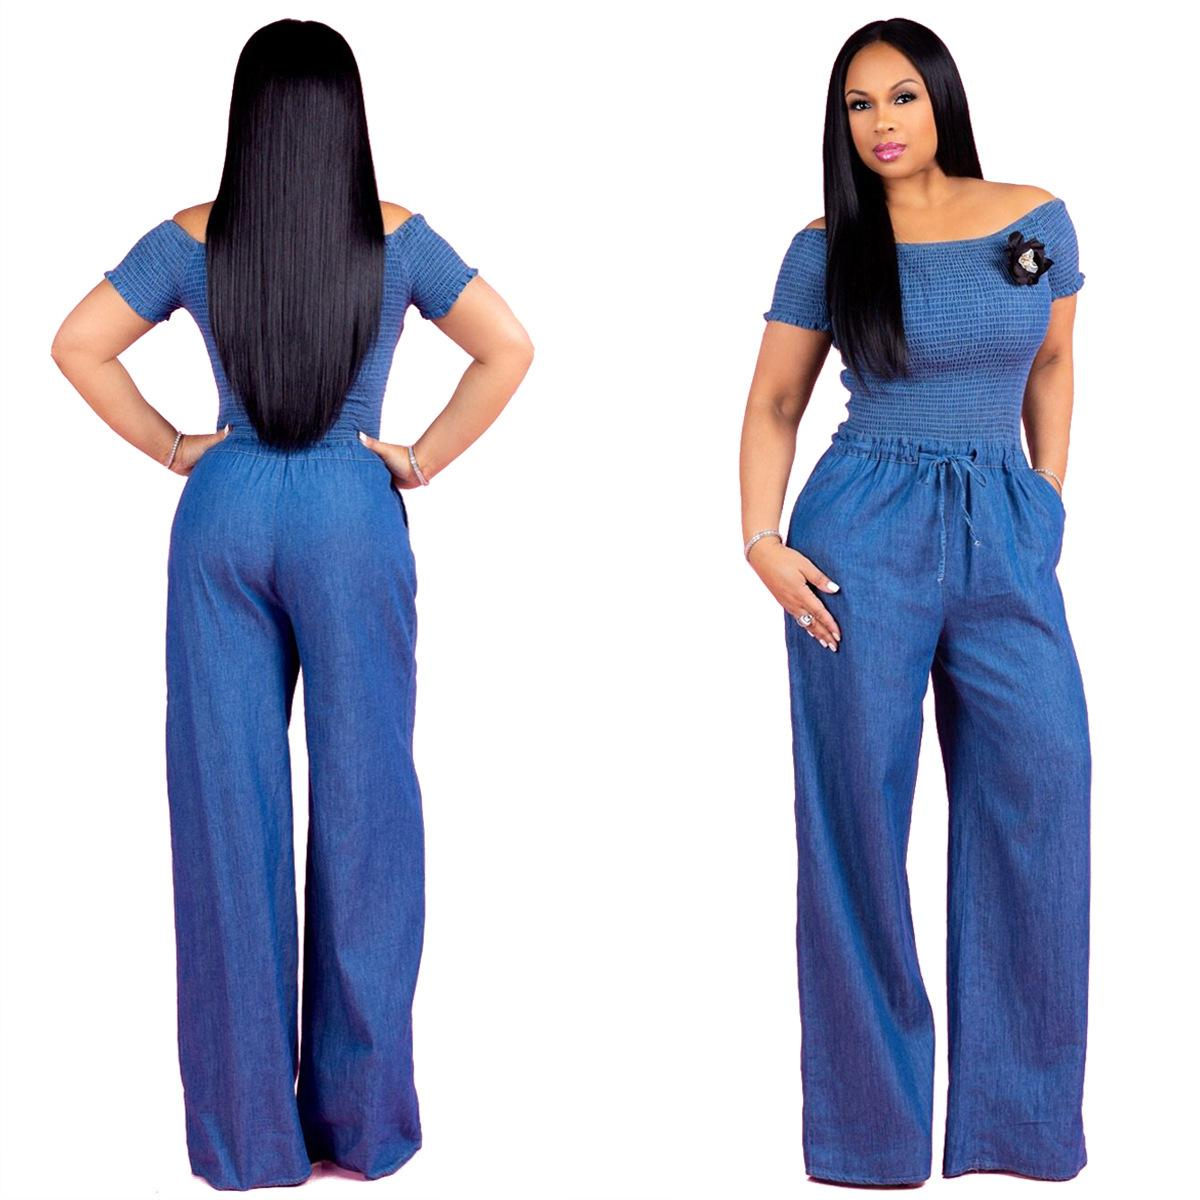 Frugal Summer 2 Piece Jumpsuit Romper Women Elegant Striped Printed Wide Leg Playsuit Sexy Party Club Wear Long Pants Overalls Women's Clothing